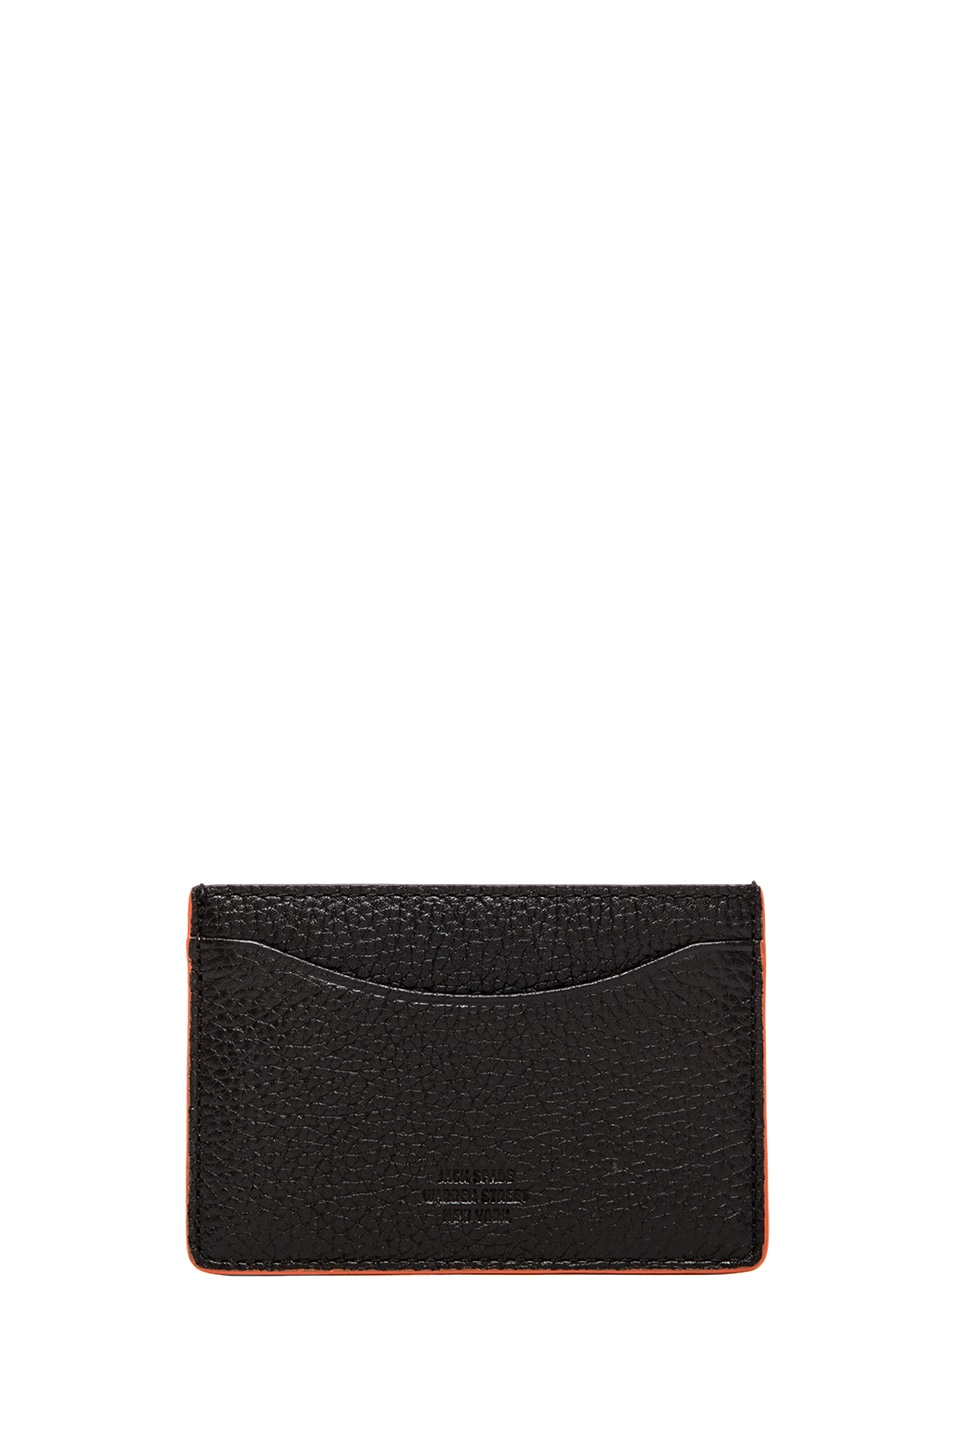 Jack Spade Mason Leather Credit Card Holder in Black & Orange & Black & Cobalt